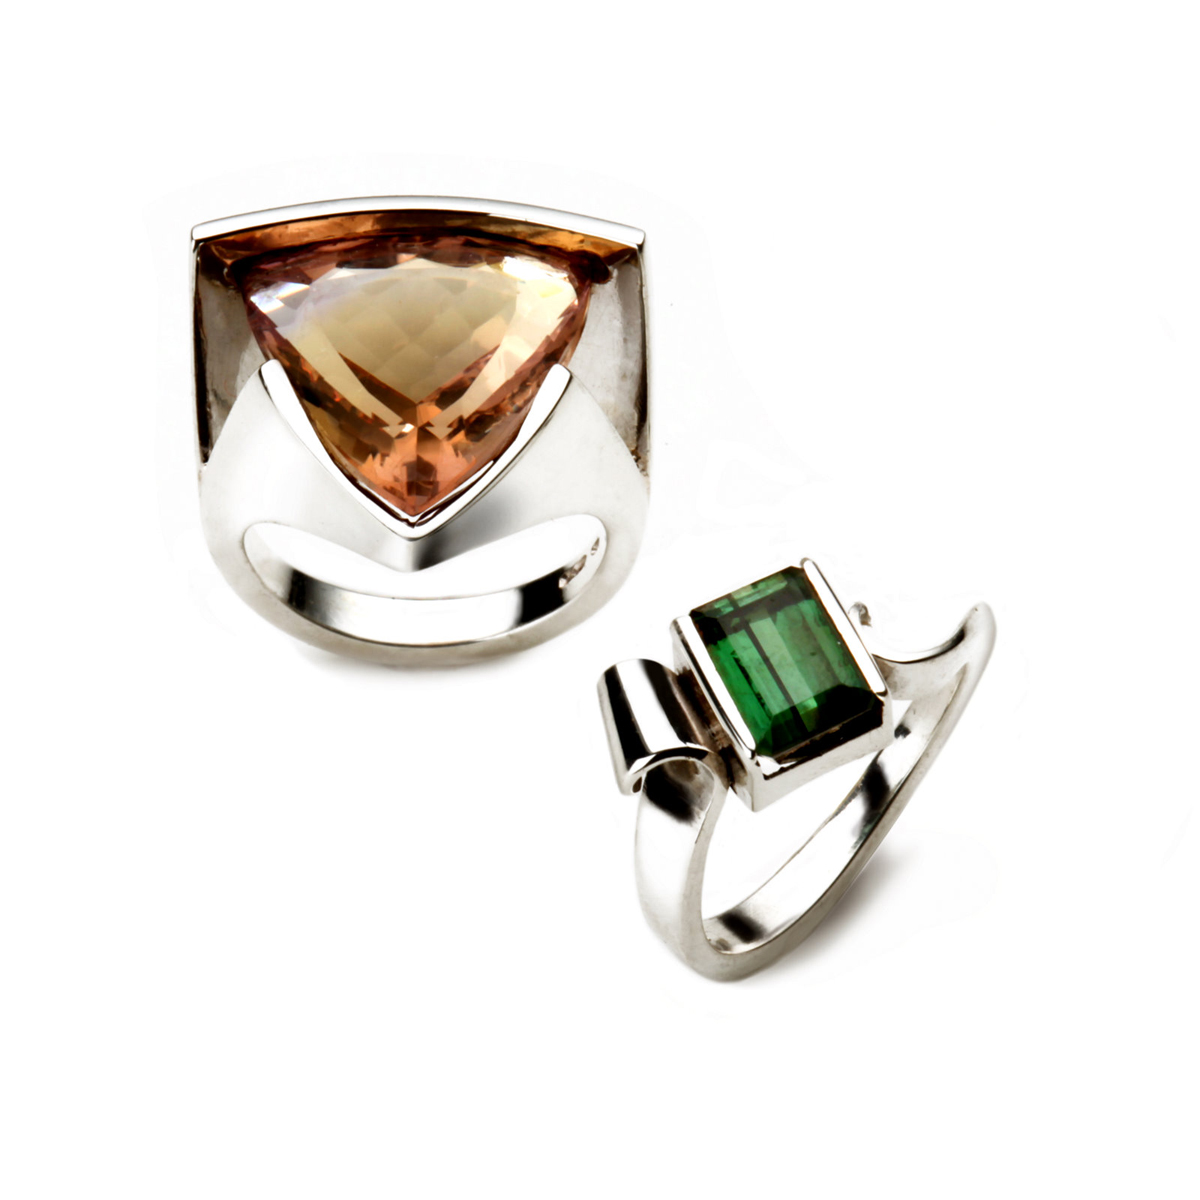 Silver Rings with Large Stones